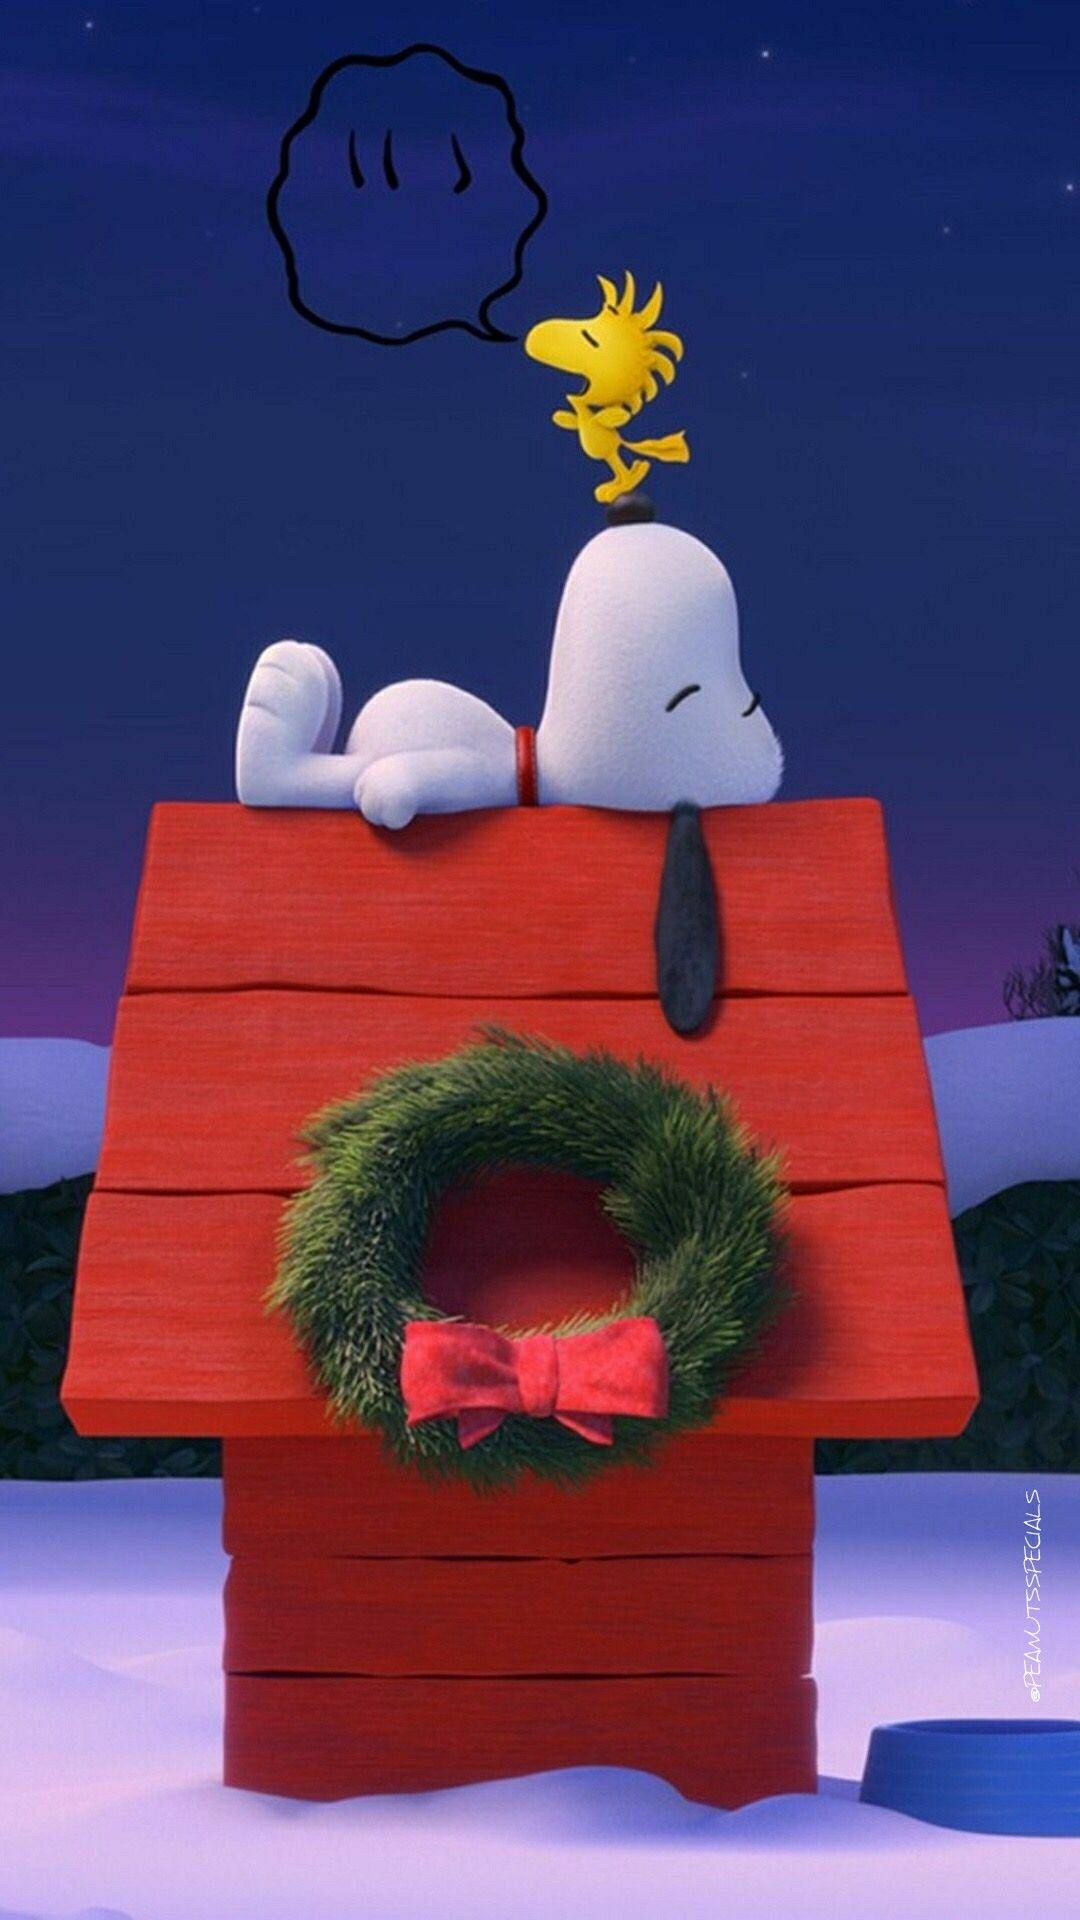 snoopy woodstock christmaswreath doghouse phone